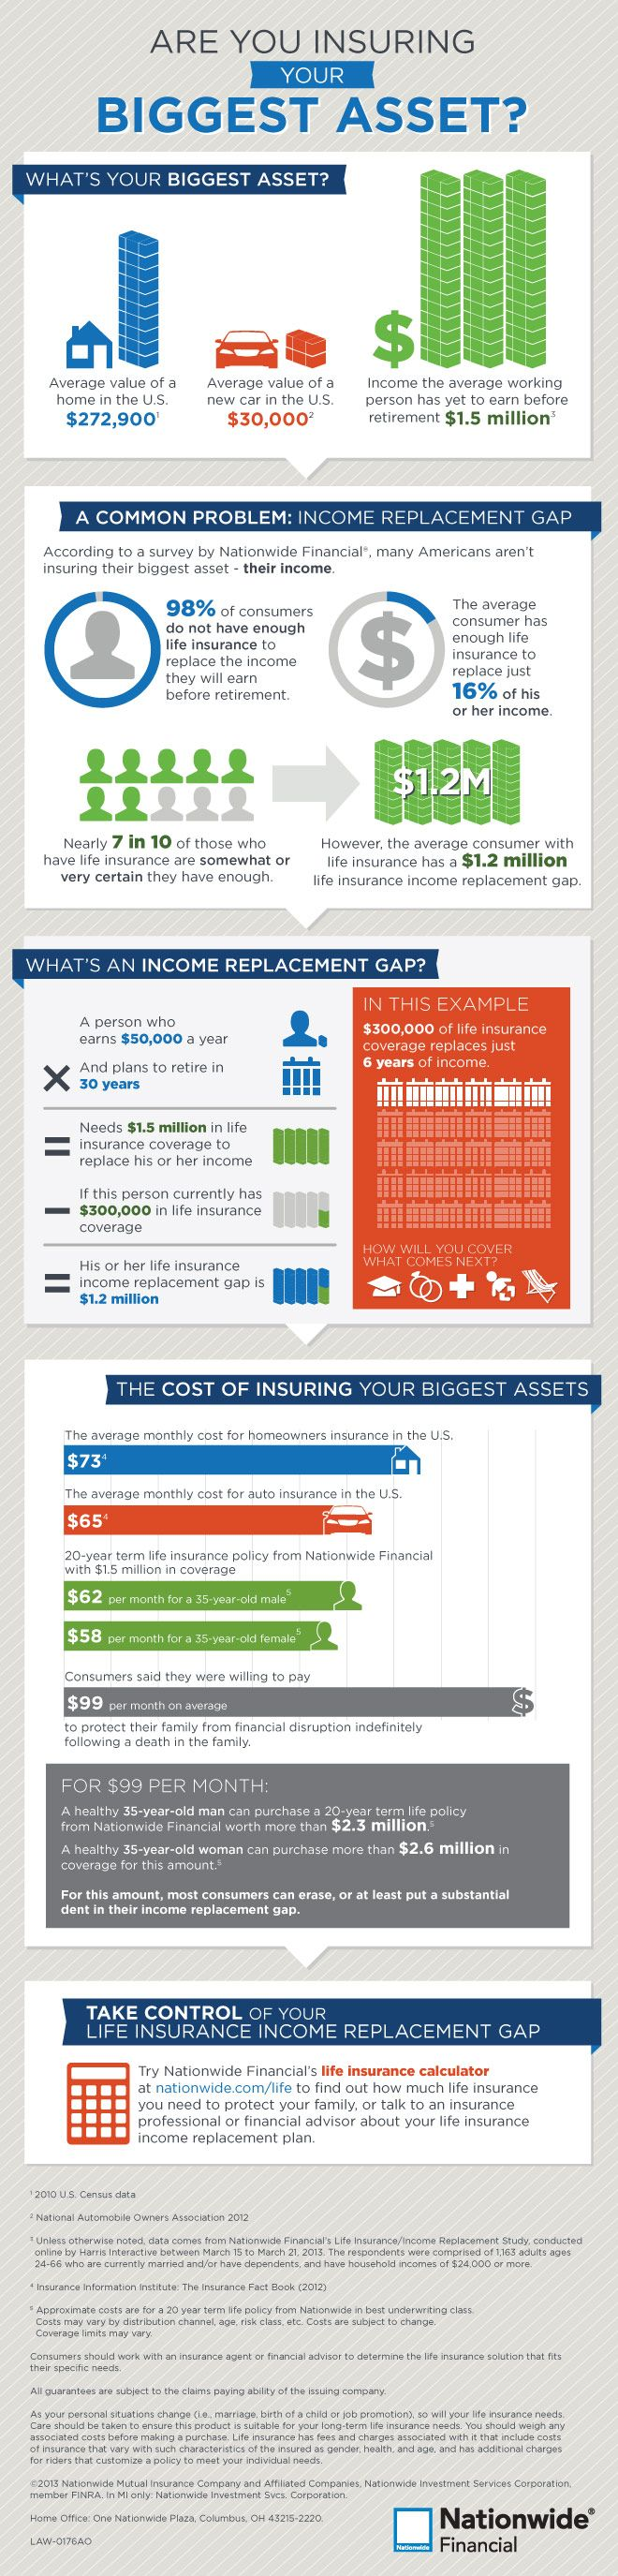 During Life Insurance Awareness Month, our goals are to grow your knowledge on the importance of life insurance and to make you feel comfortable discussing it. Allow us to break it down for you: http://blog.nationwide.com/life-insurance-income-replacement-infographic/